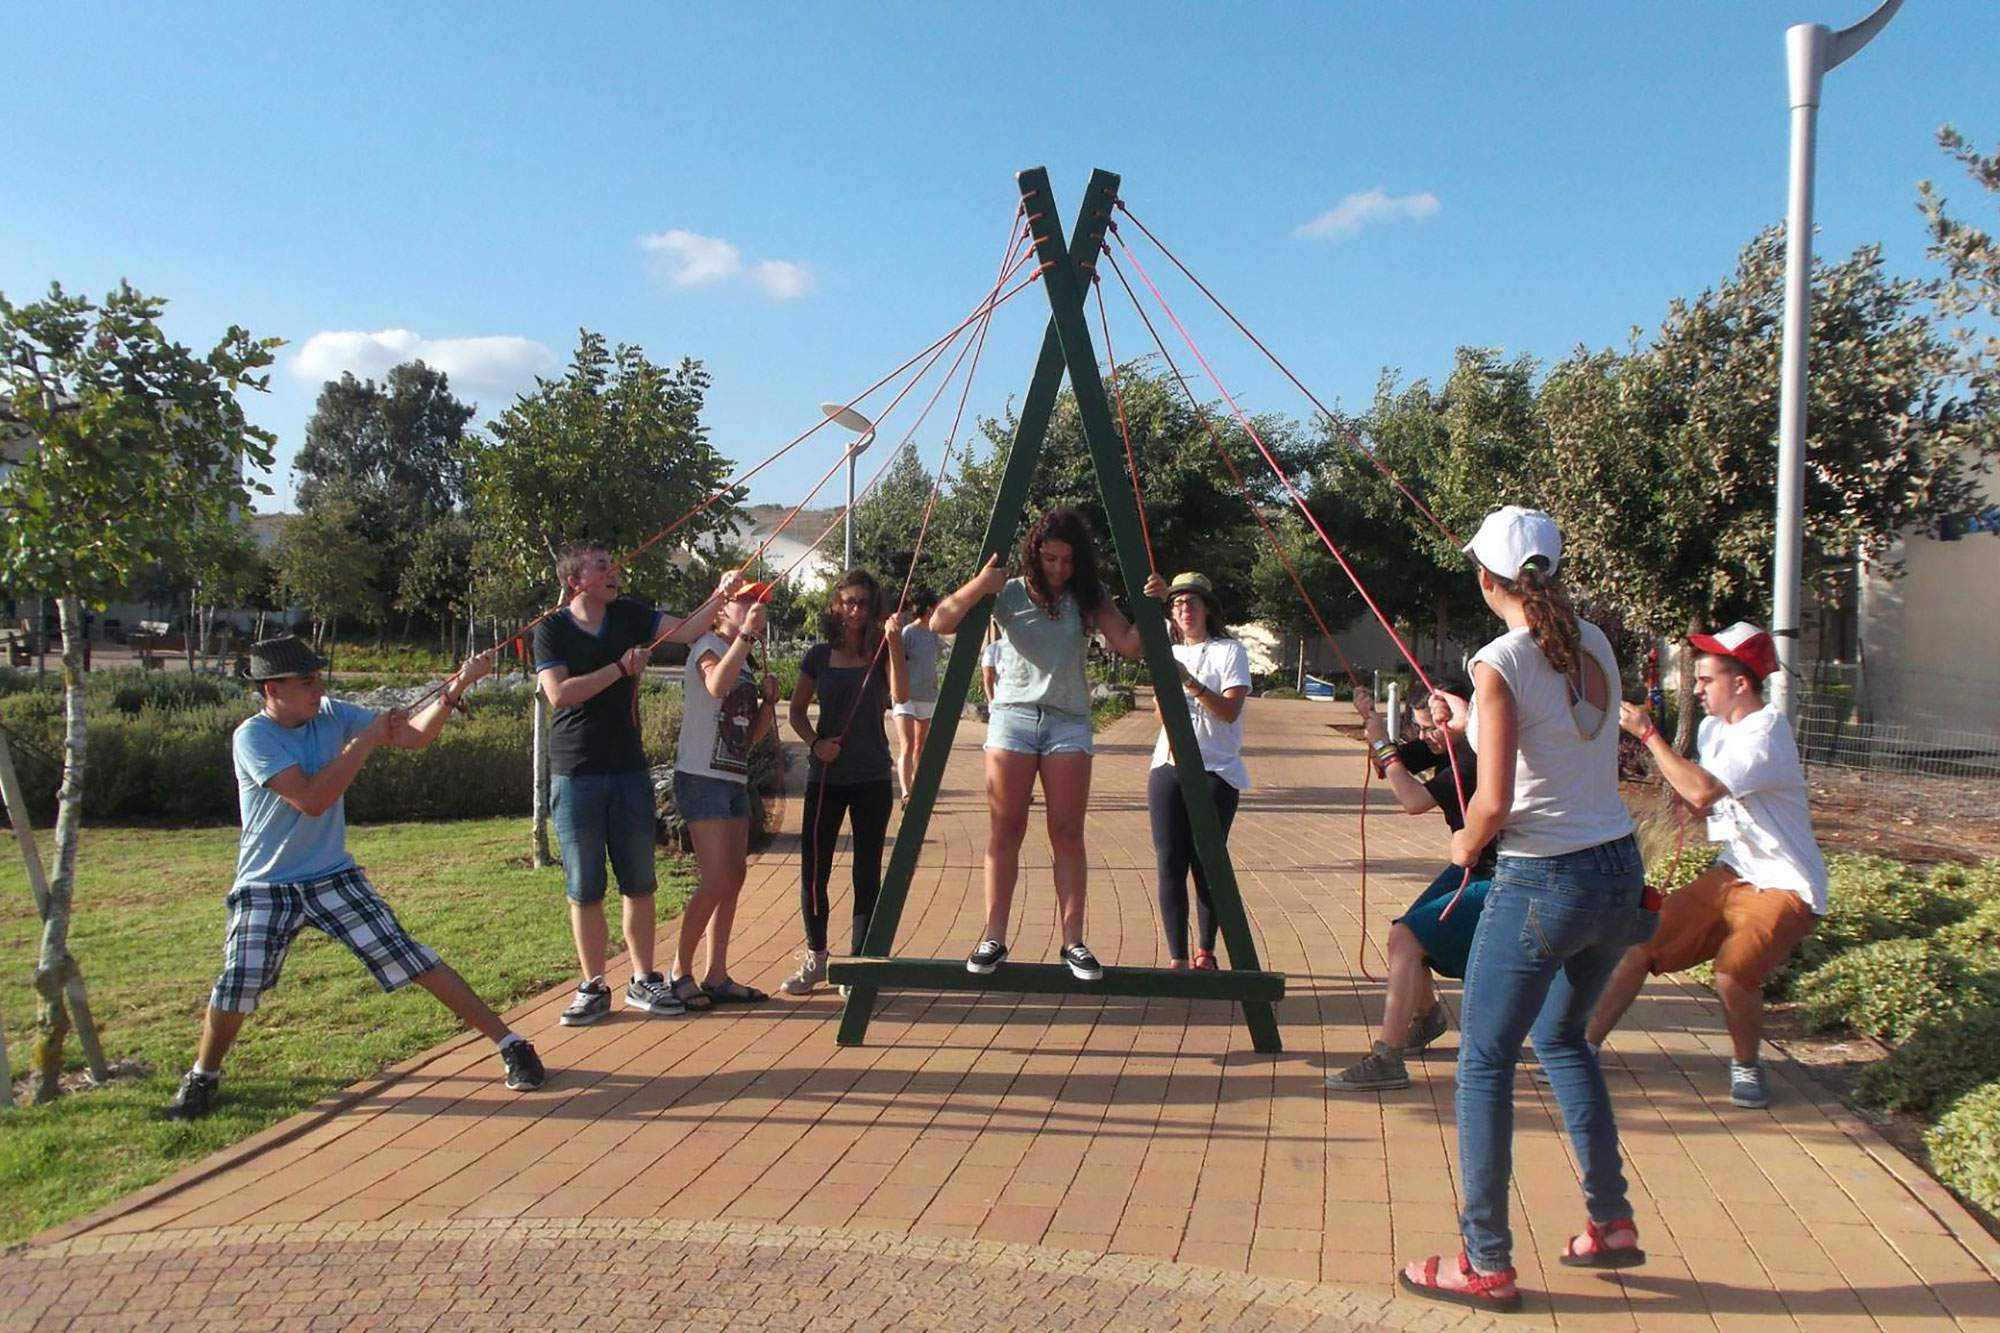 Group Activities at Jordan River Village